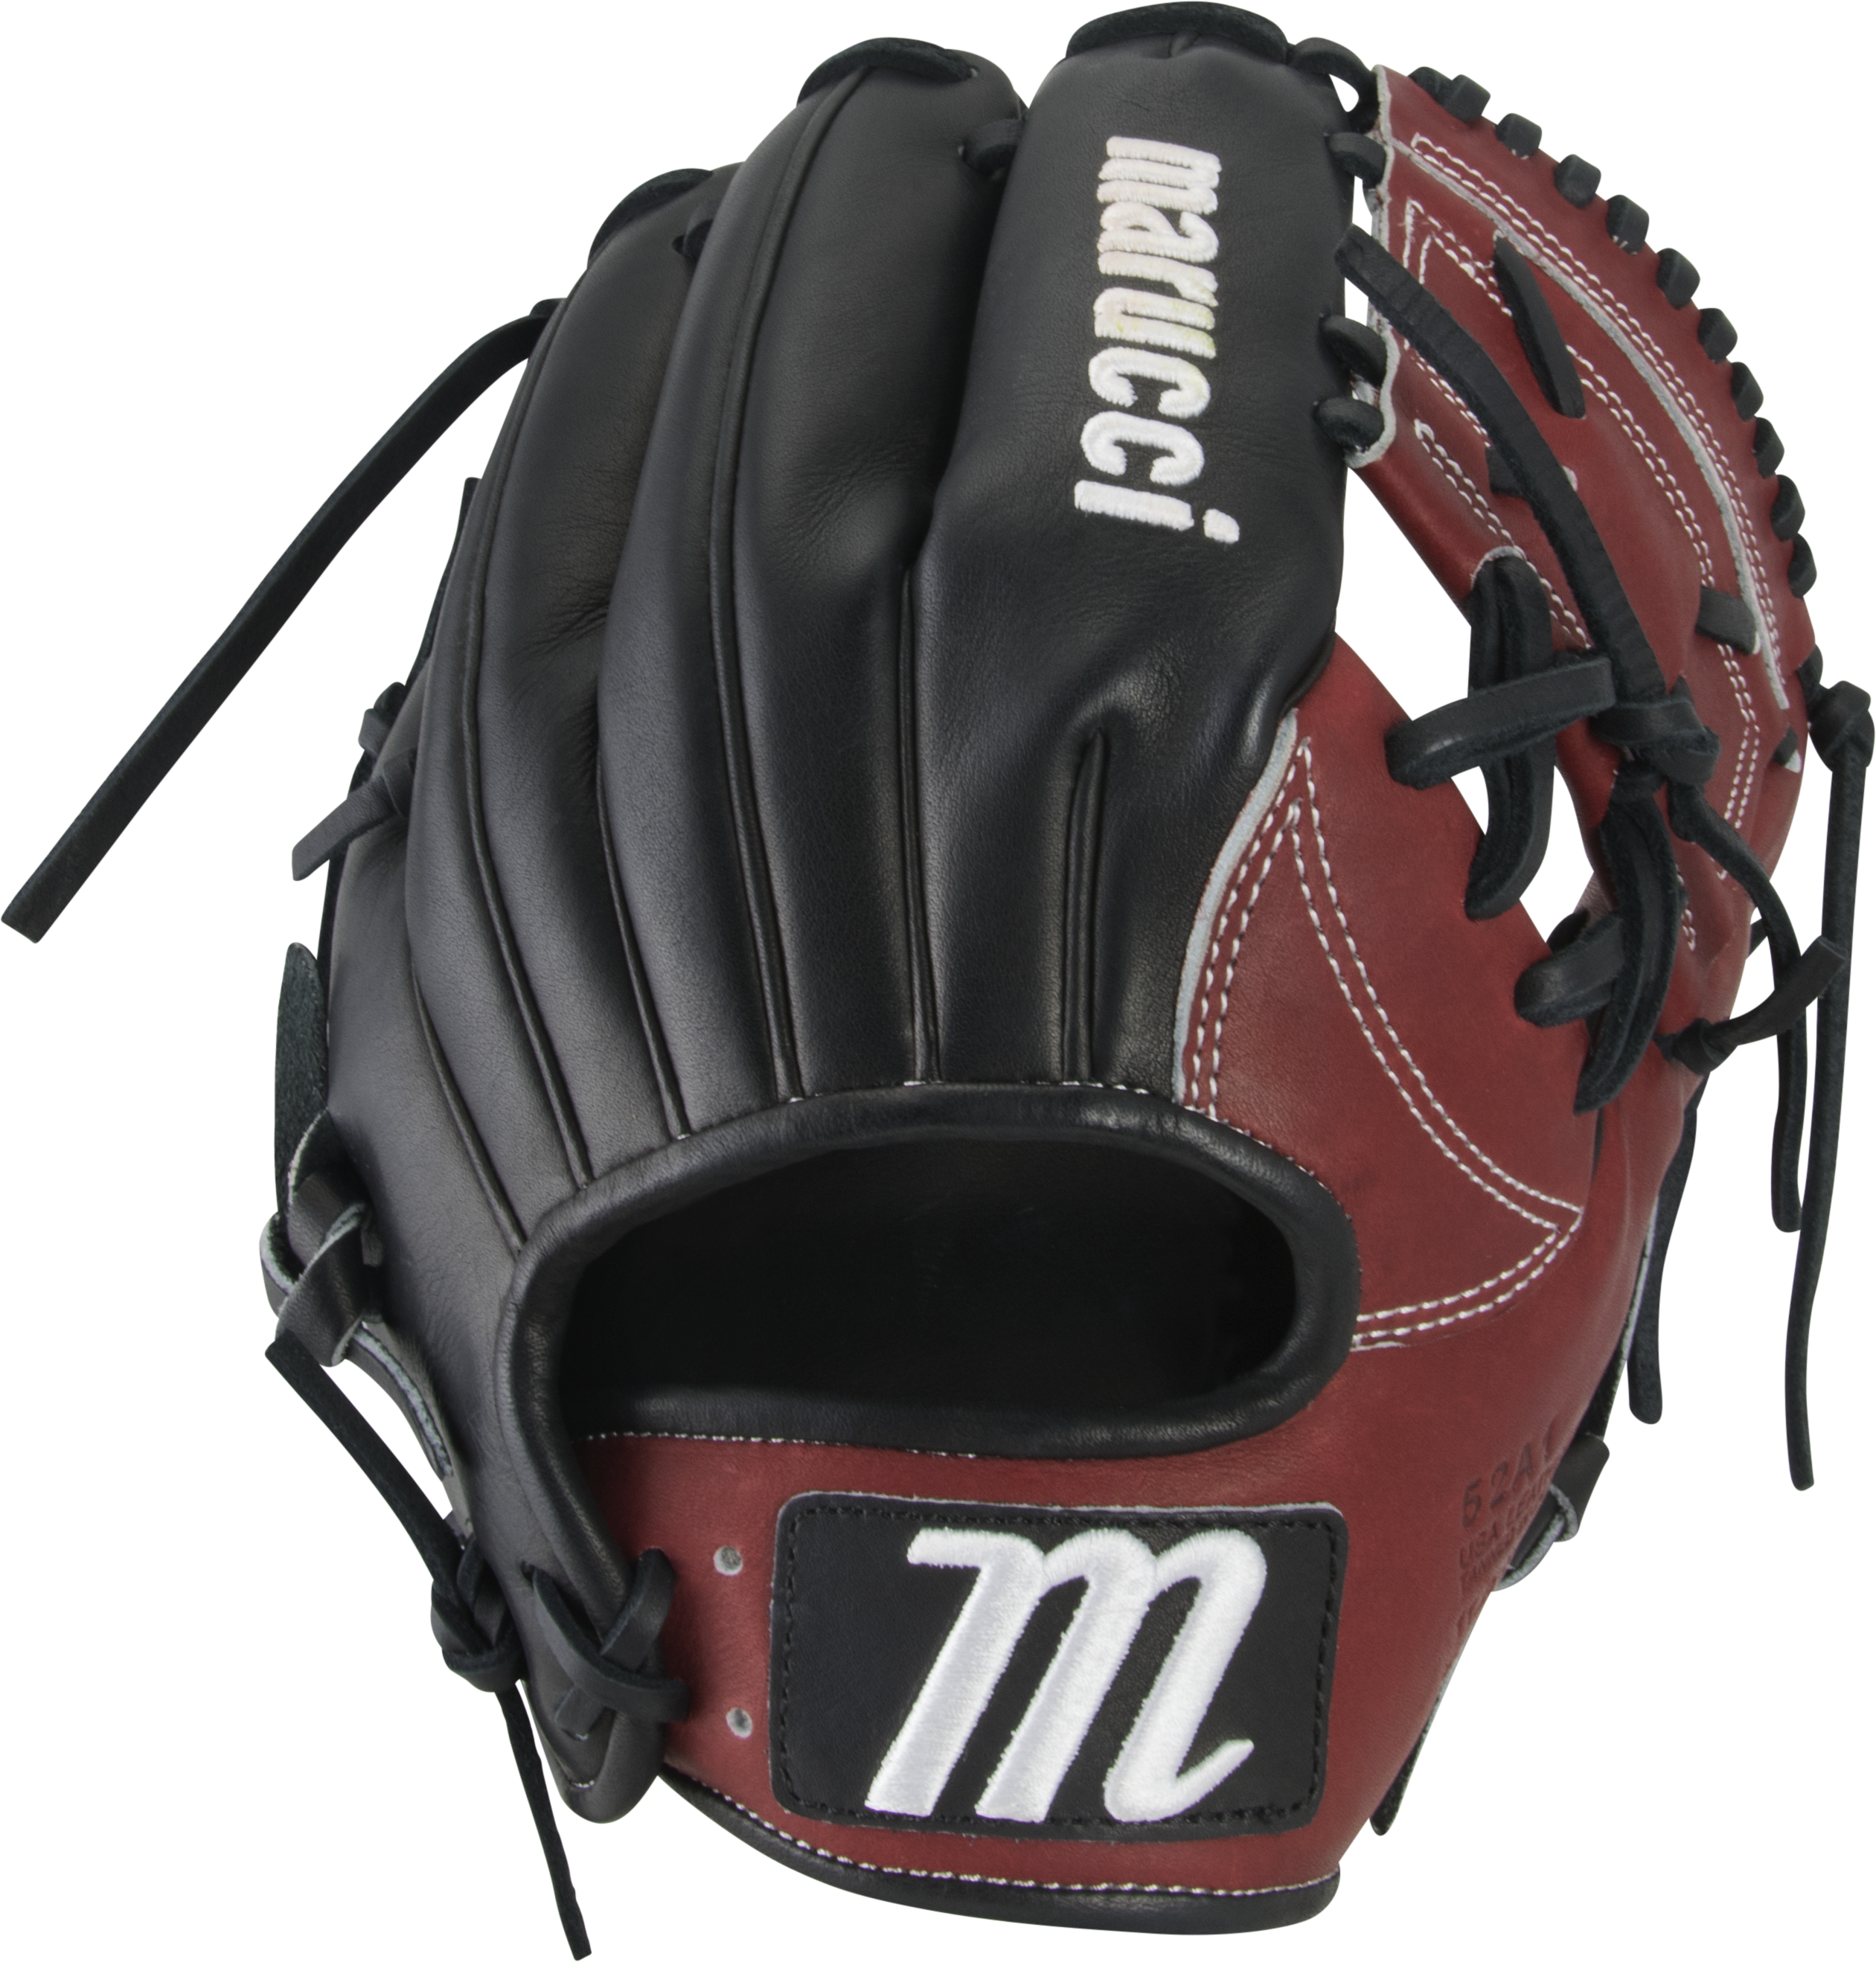 marucci-capitol-11-25-baseball-glove-52ai-one-piece-web-right-hand-throw MFGCP52A1-WNBK-RightHandThrow Marucci  849817099186  Premium Japanese-tanned USA Kip leather combines ideal stiffness with lightweight feel